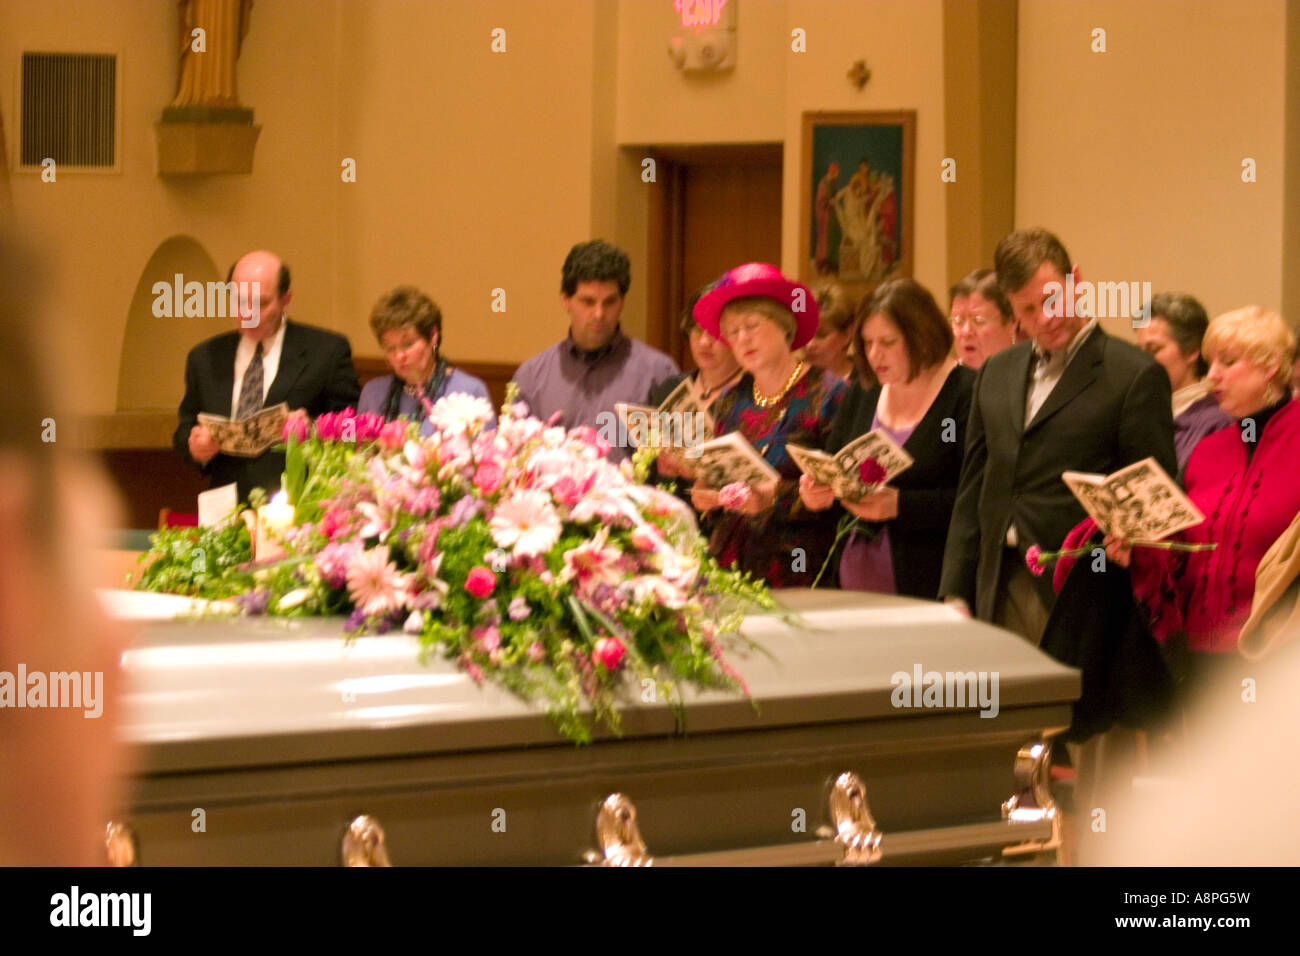 Catholic funeral stock photos catholic funeral stock images alamy casket with flowers and funeral friends singing a hymn st joan of arc catholic church izmirmasajfo